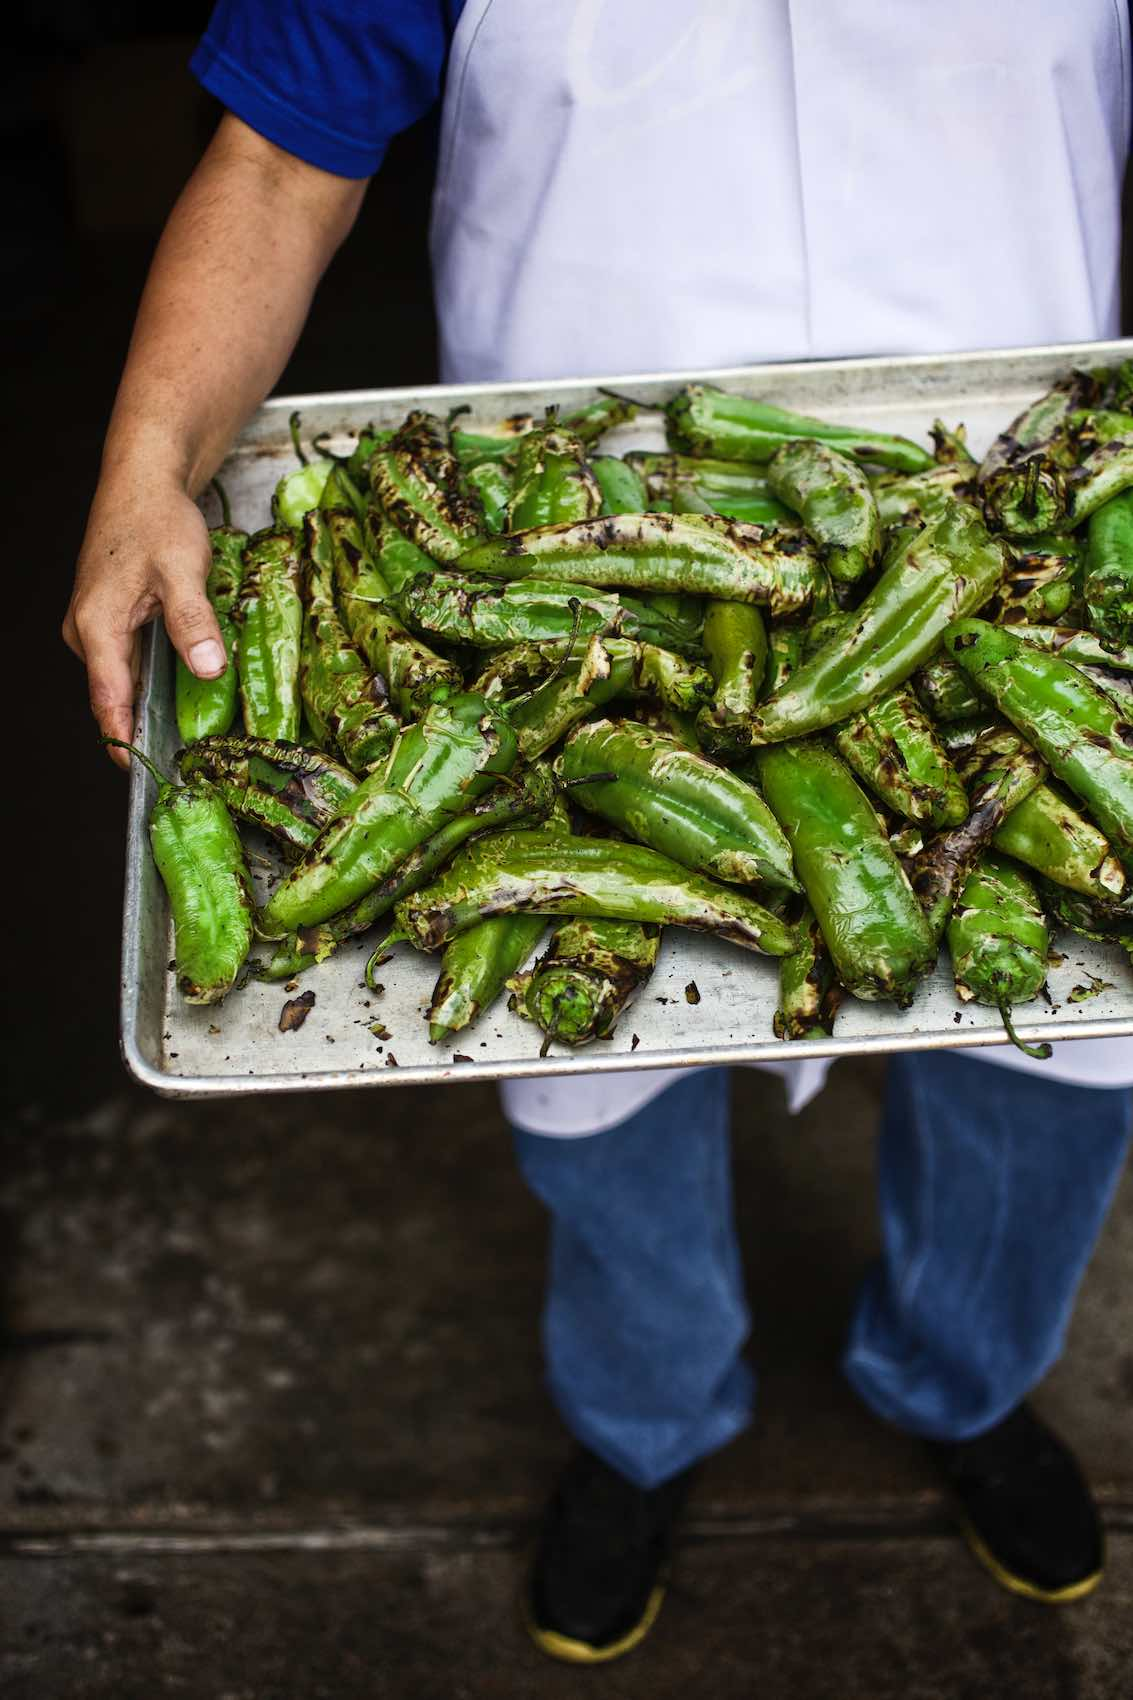 Jody Horton Photography - Roasted poblano peppers on metal sheet tray.